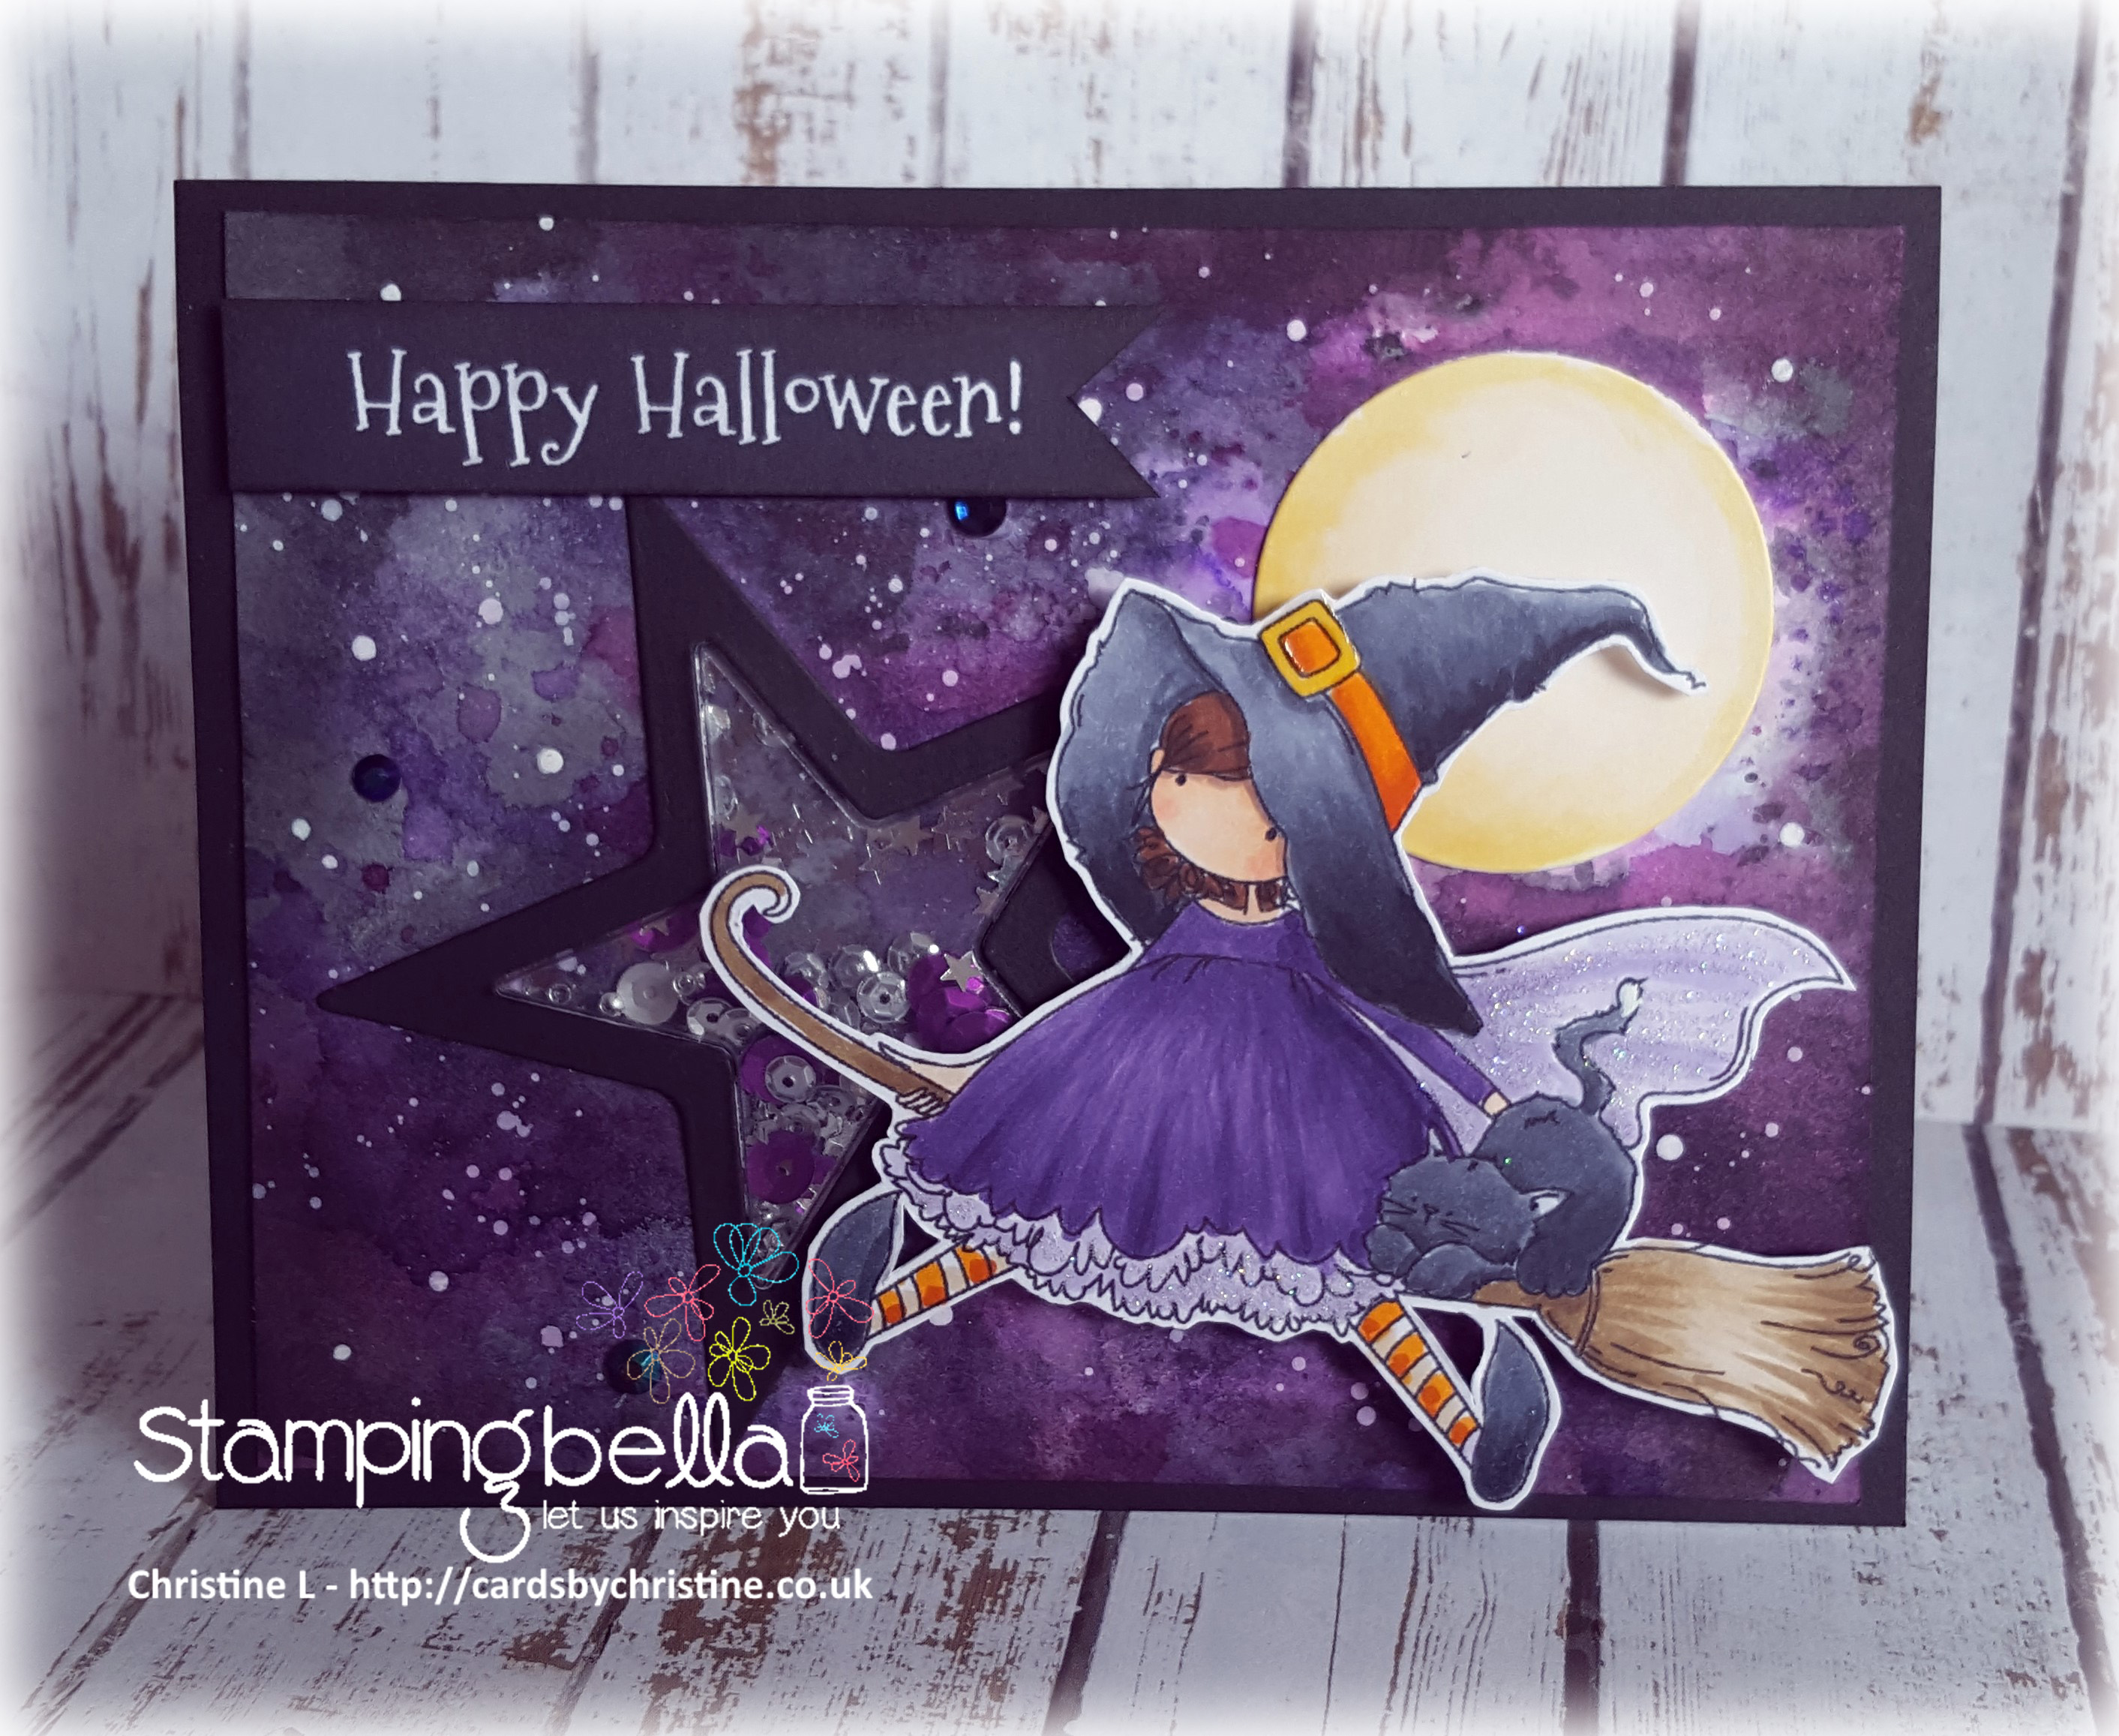 Stamping Bella SNEAK PEEK DAY 1- STAMPS USED: Tiny Townie HATTIE loves HALLOWEEN card by CHRISTINE LEVISON